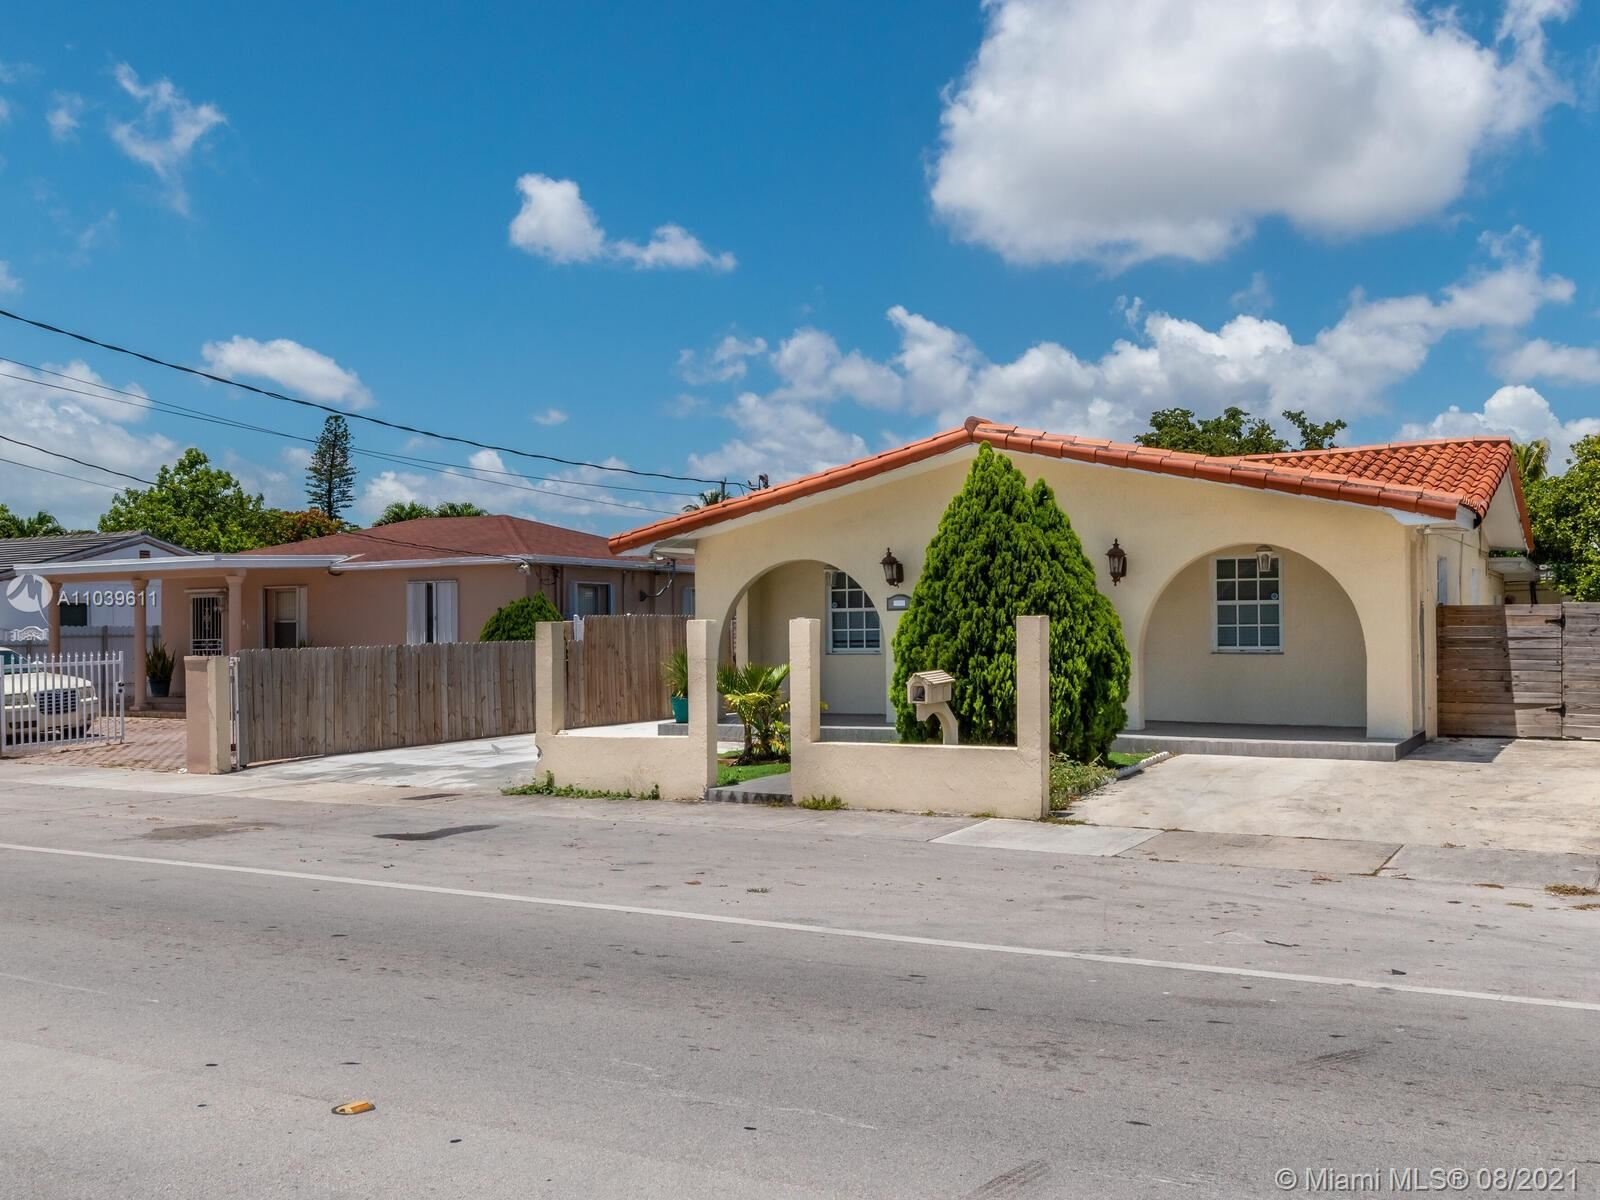 Photo of 3241 NW 17th St, Miami, FL 33125 (MLS # A11039611)